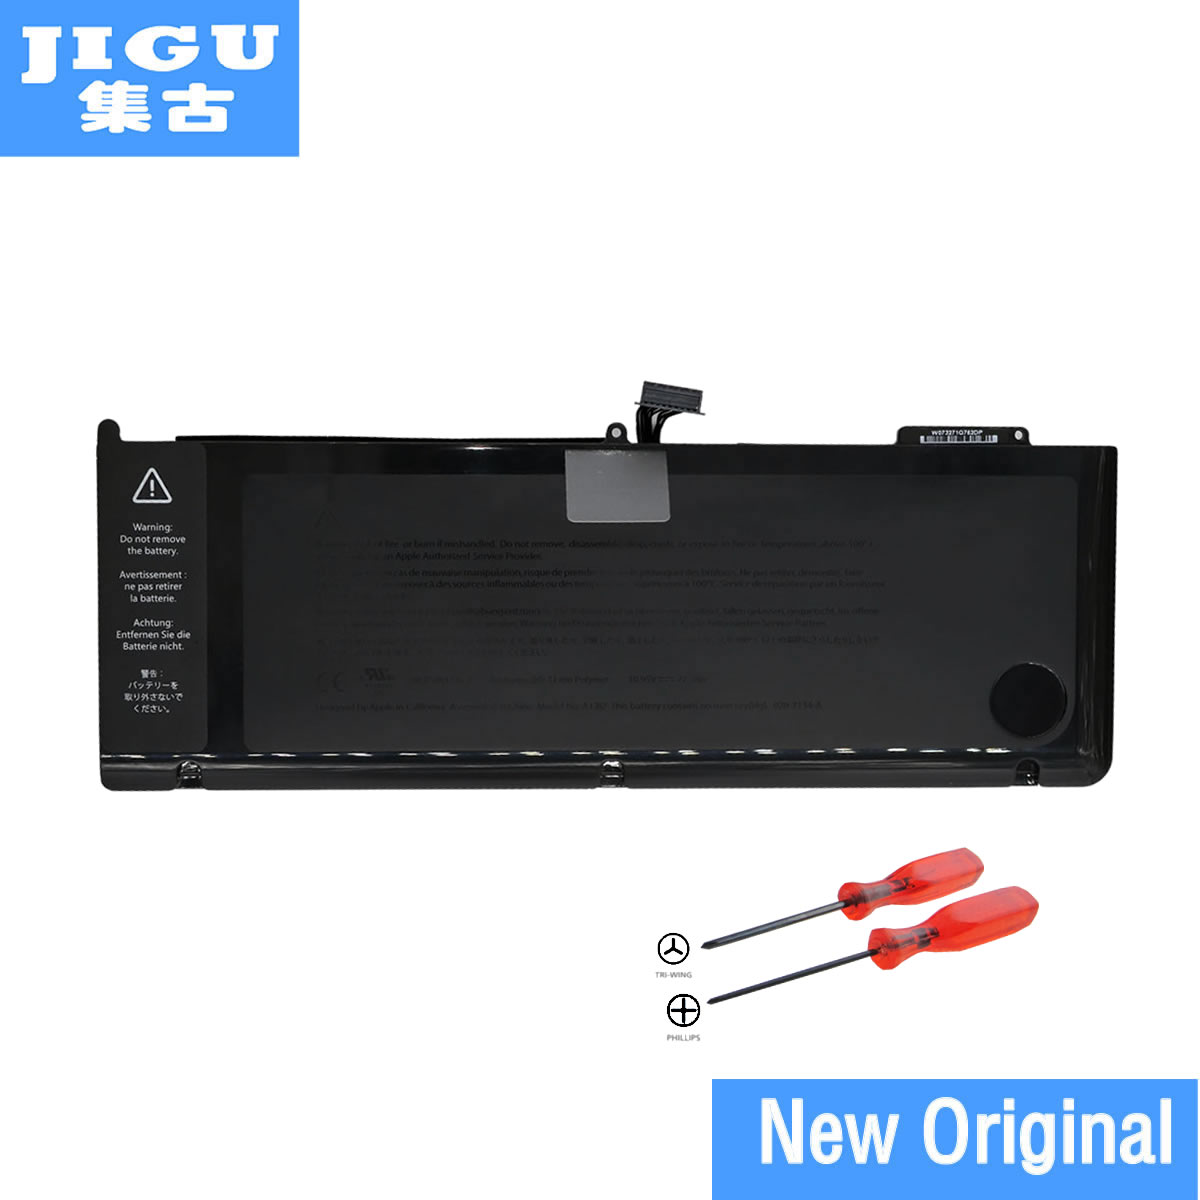 JIGU Free shipping A1382 Original Laptop Battery For Apple MacBook Pro 15 A1286 year 2011 2012 MC721 MC723 Series magdi mousa genome mapping of radish raphanus sativus l using pcr based markers